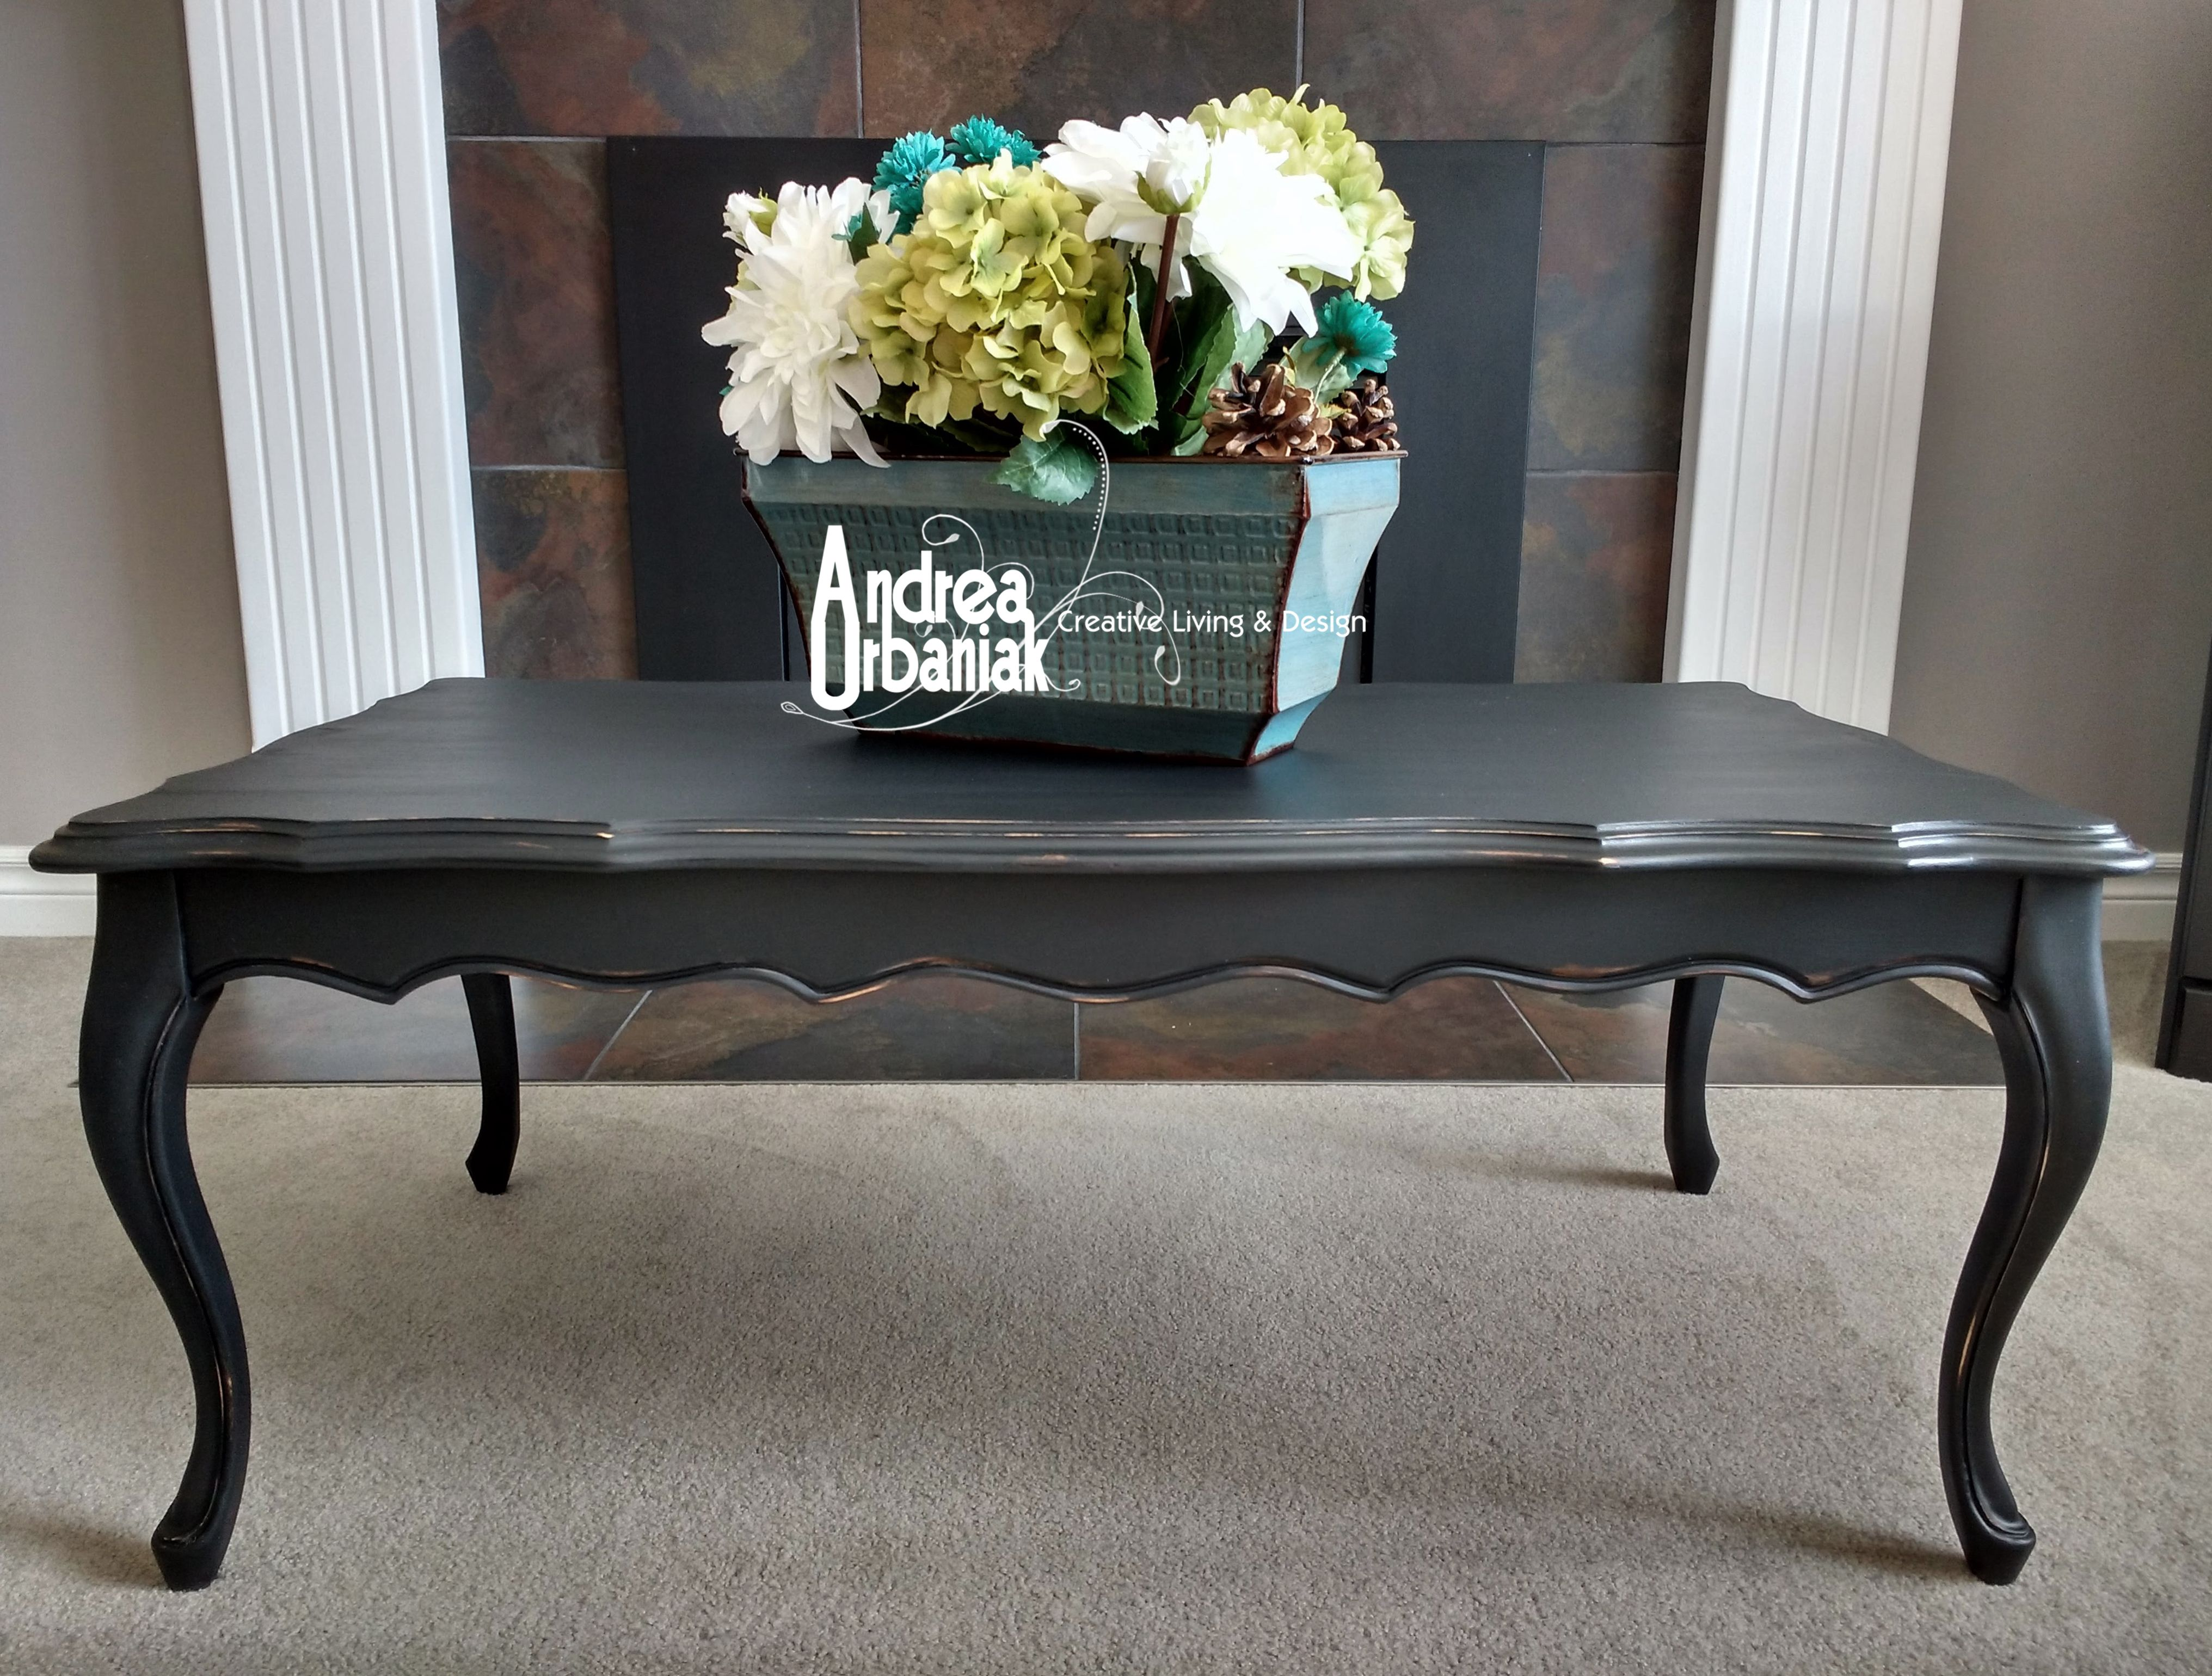 Repainted Vintage Matte Black Coffee Table Painted With Lamp Black Milk Paint By General Finishes Pretty Furniture Painted Table Painted Coffee Tables